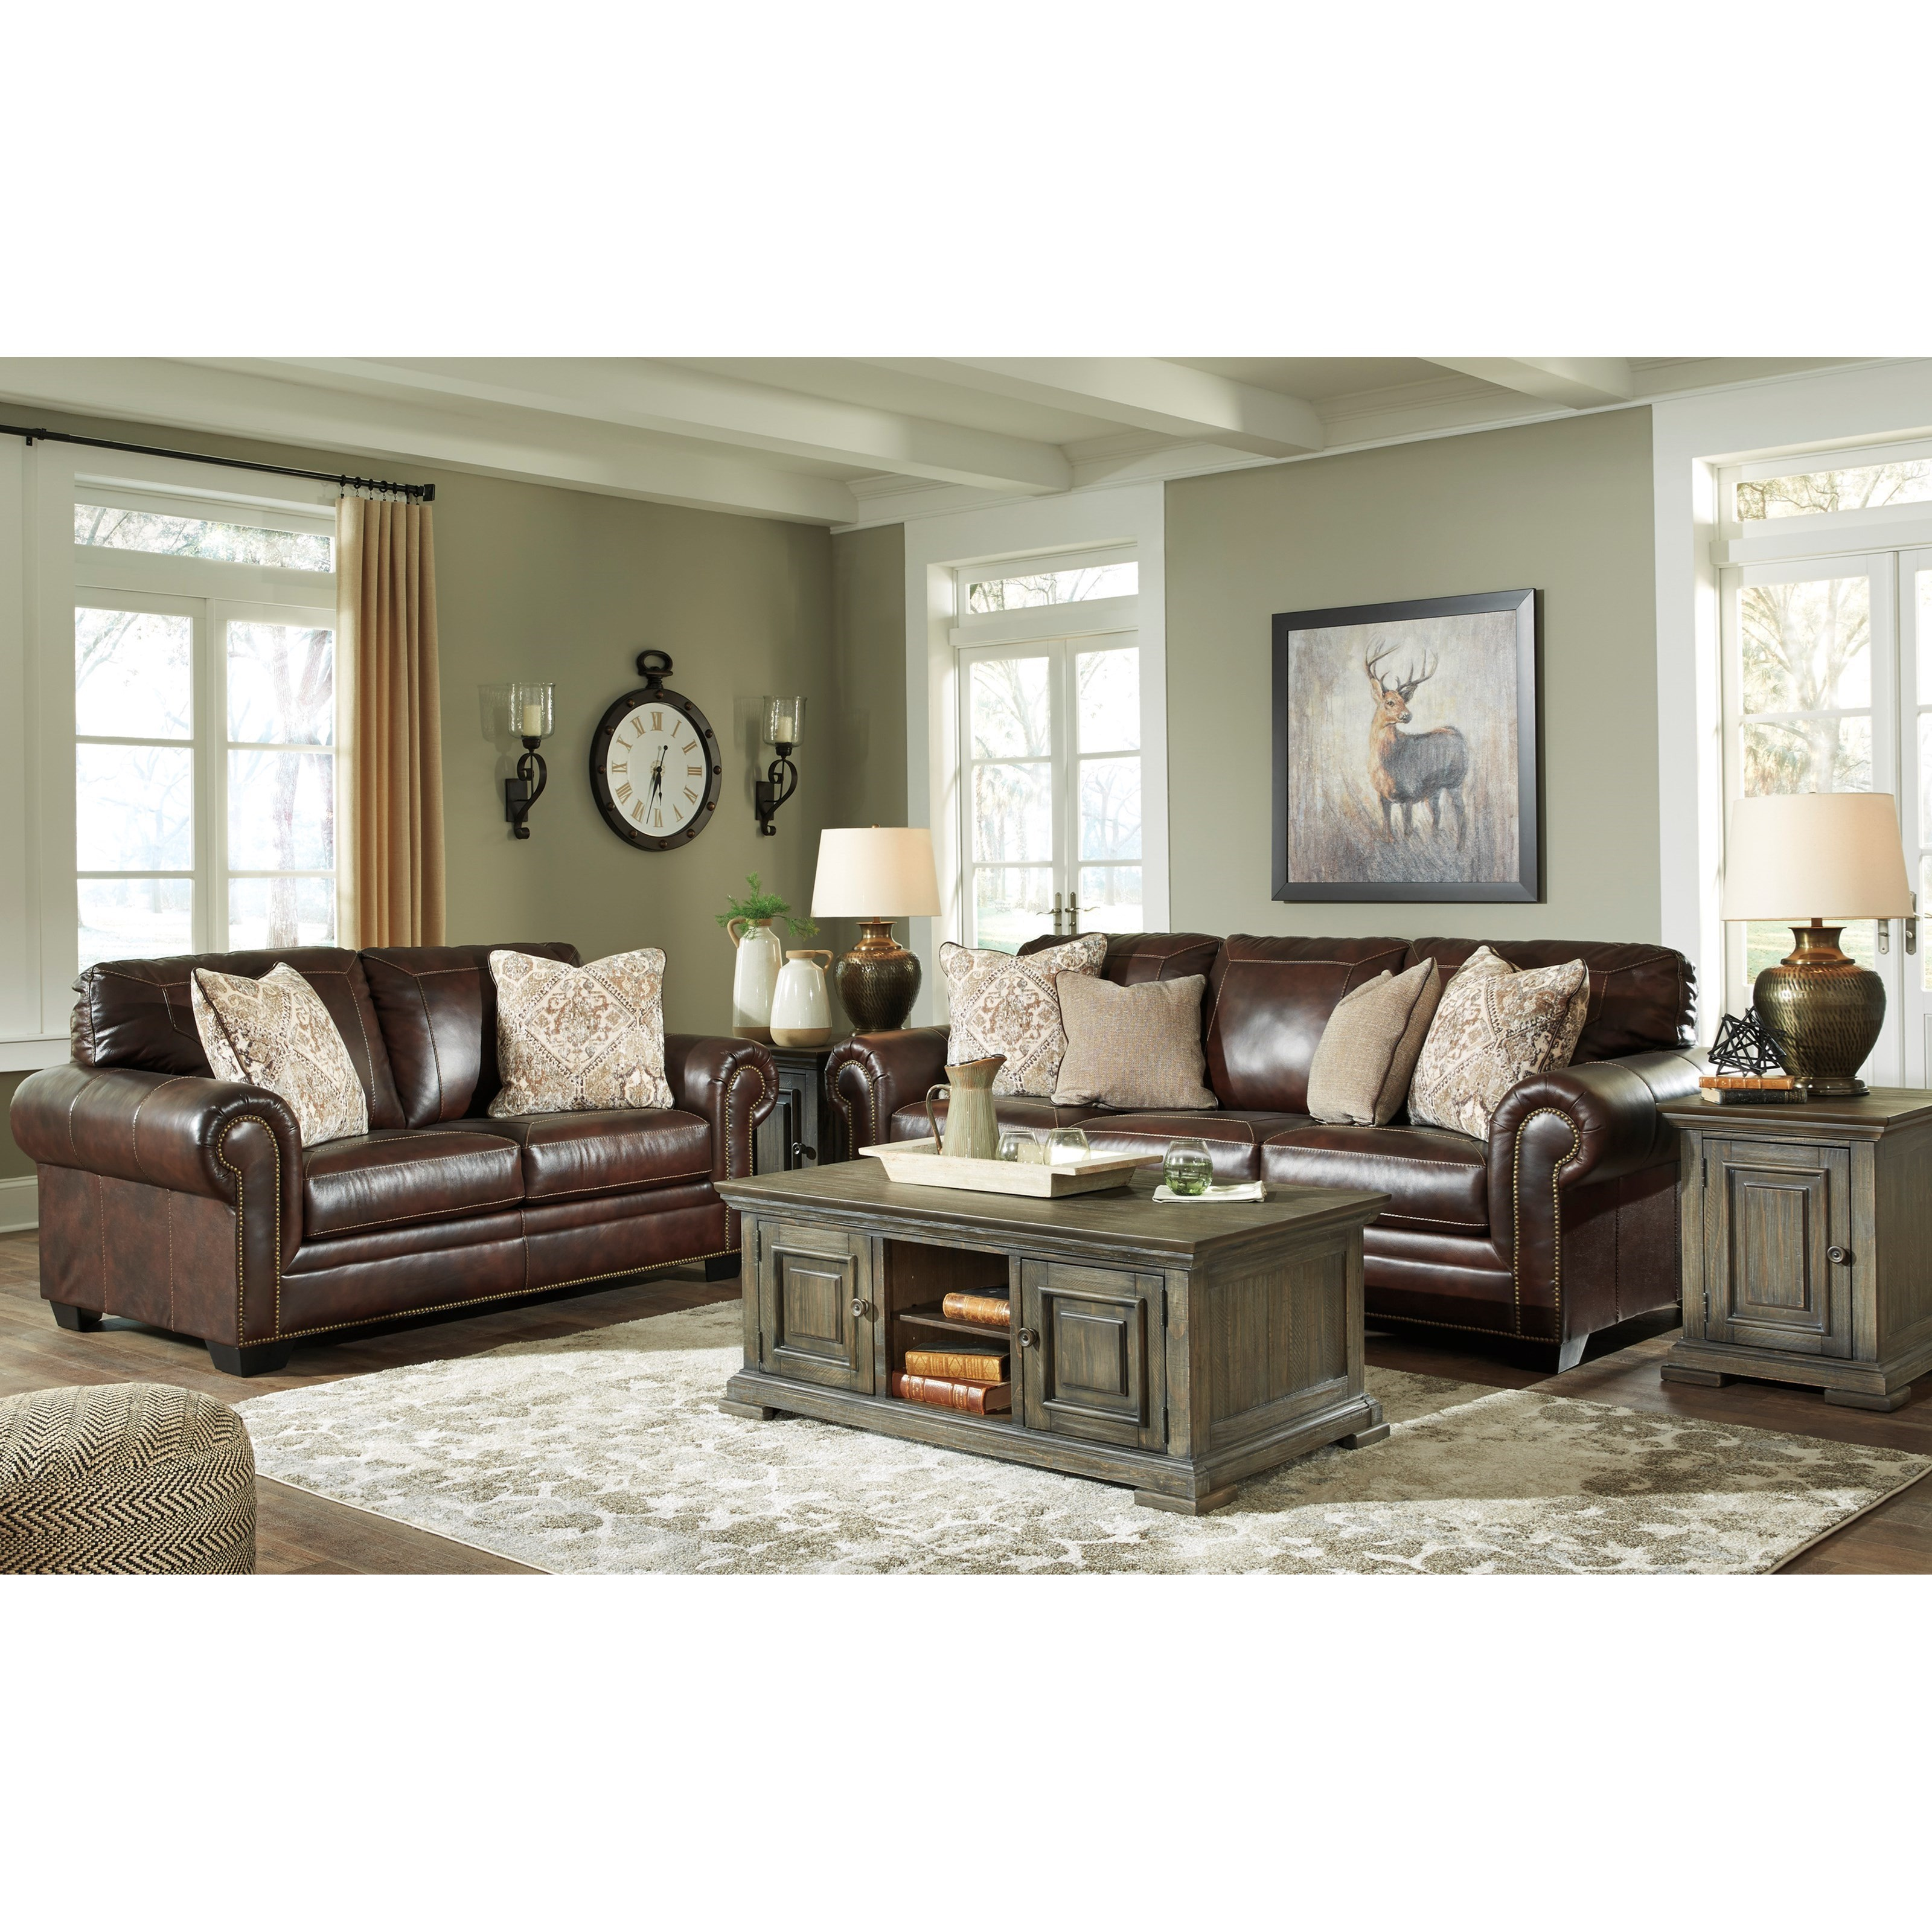 Roleson Stationary Living Room Group by Ashley Signature Design at Dunk & Bright Furniture